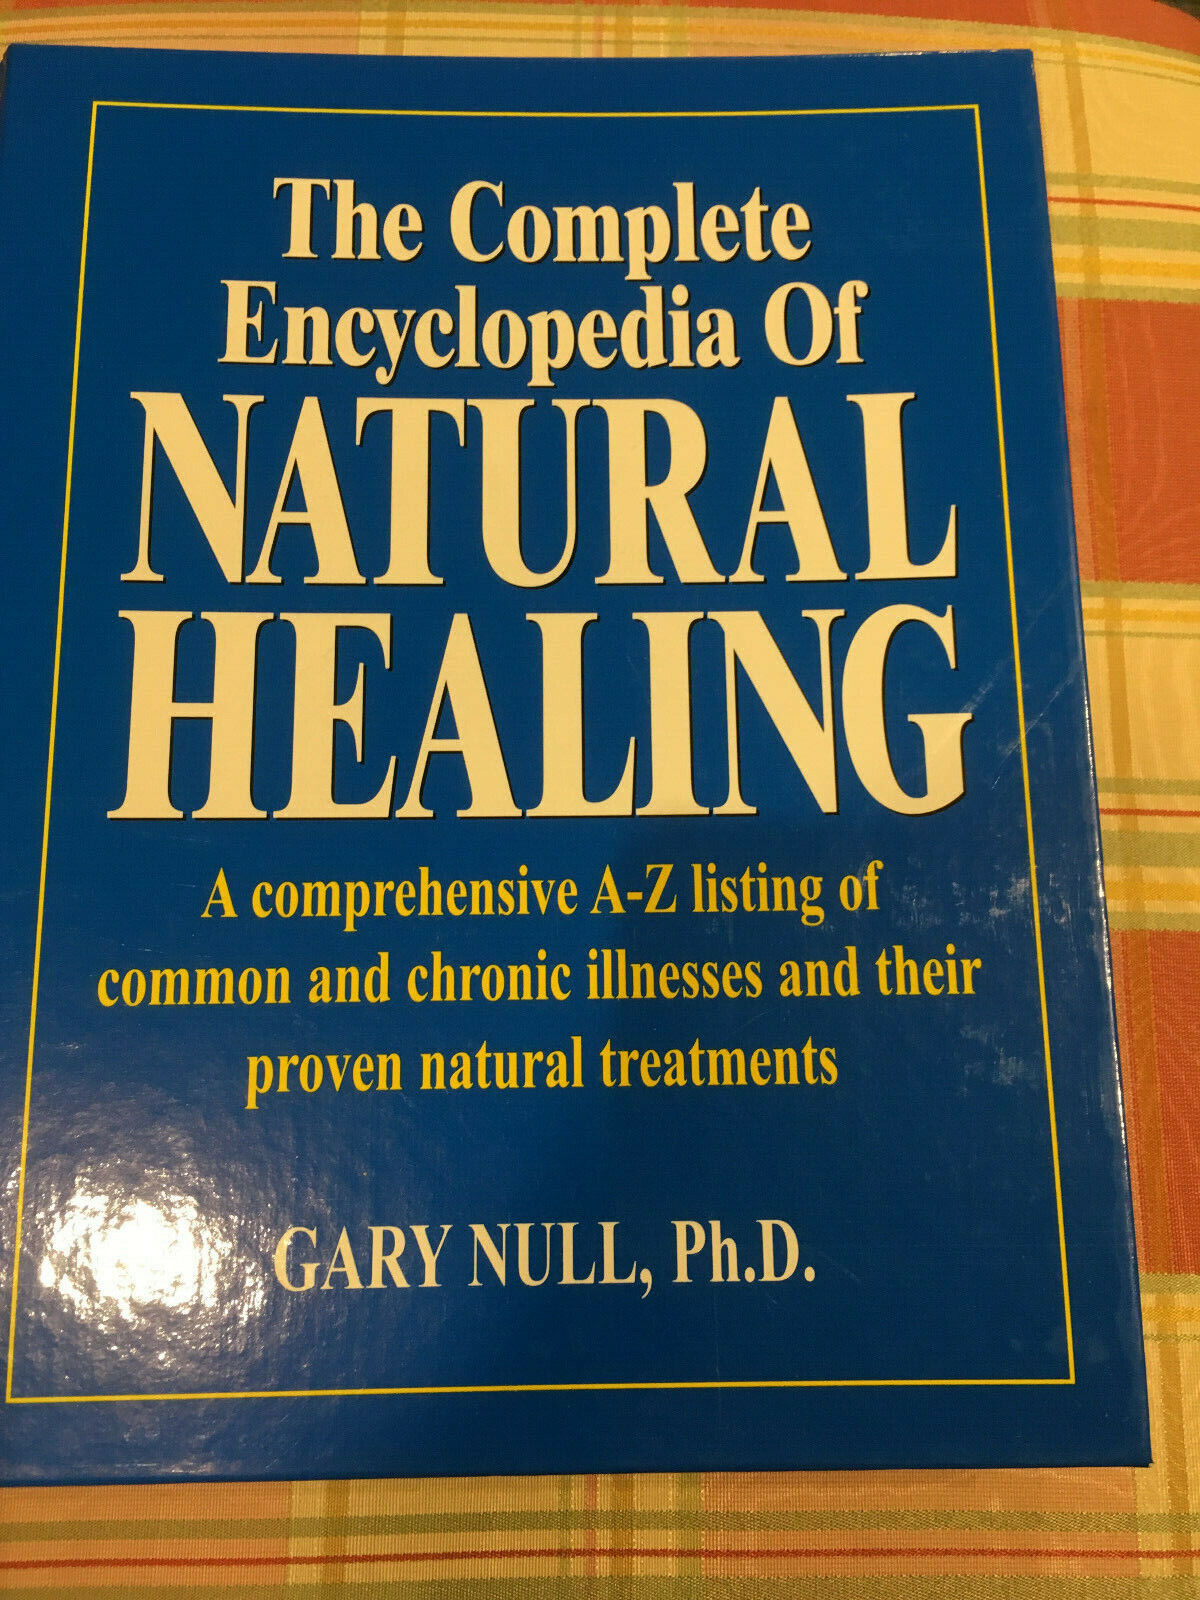 The Complete Encyclopedia Of Natural Healing. Gary Null, Ph.D Hard Cover 500 Pgs - $1.50